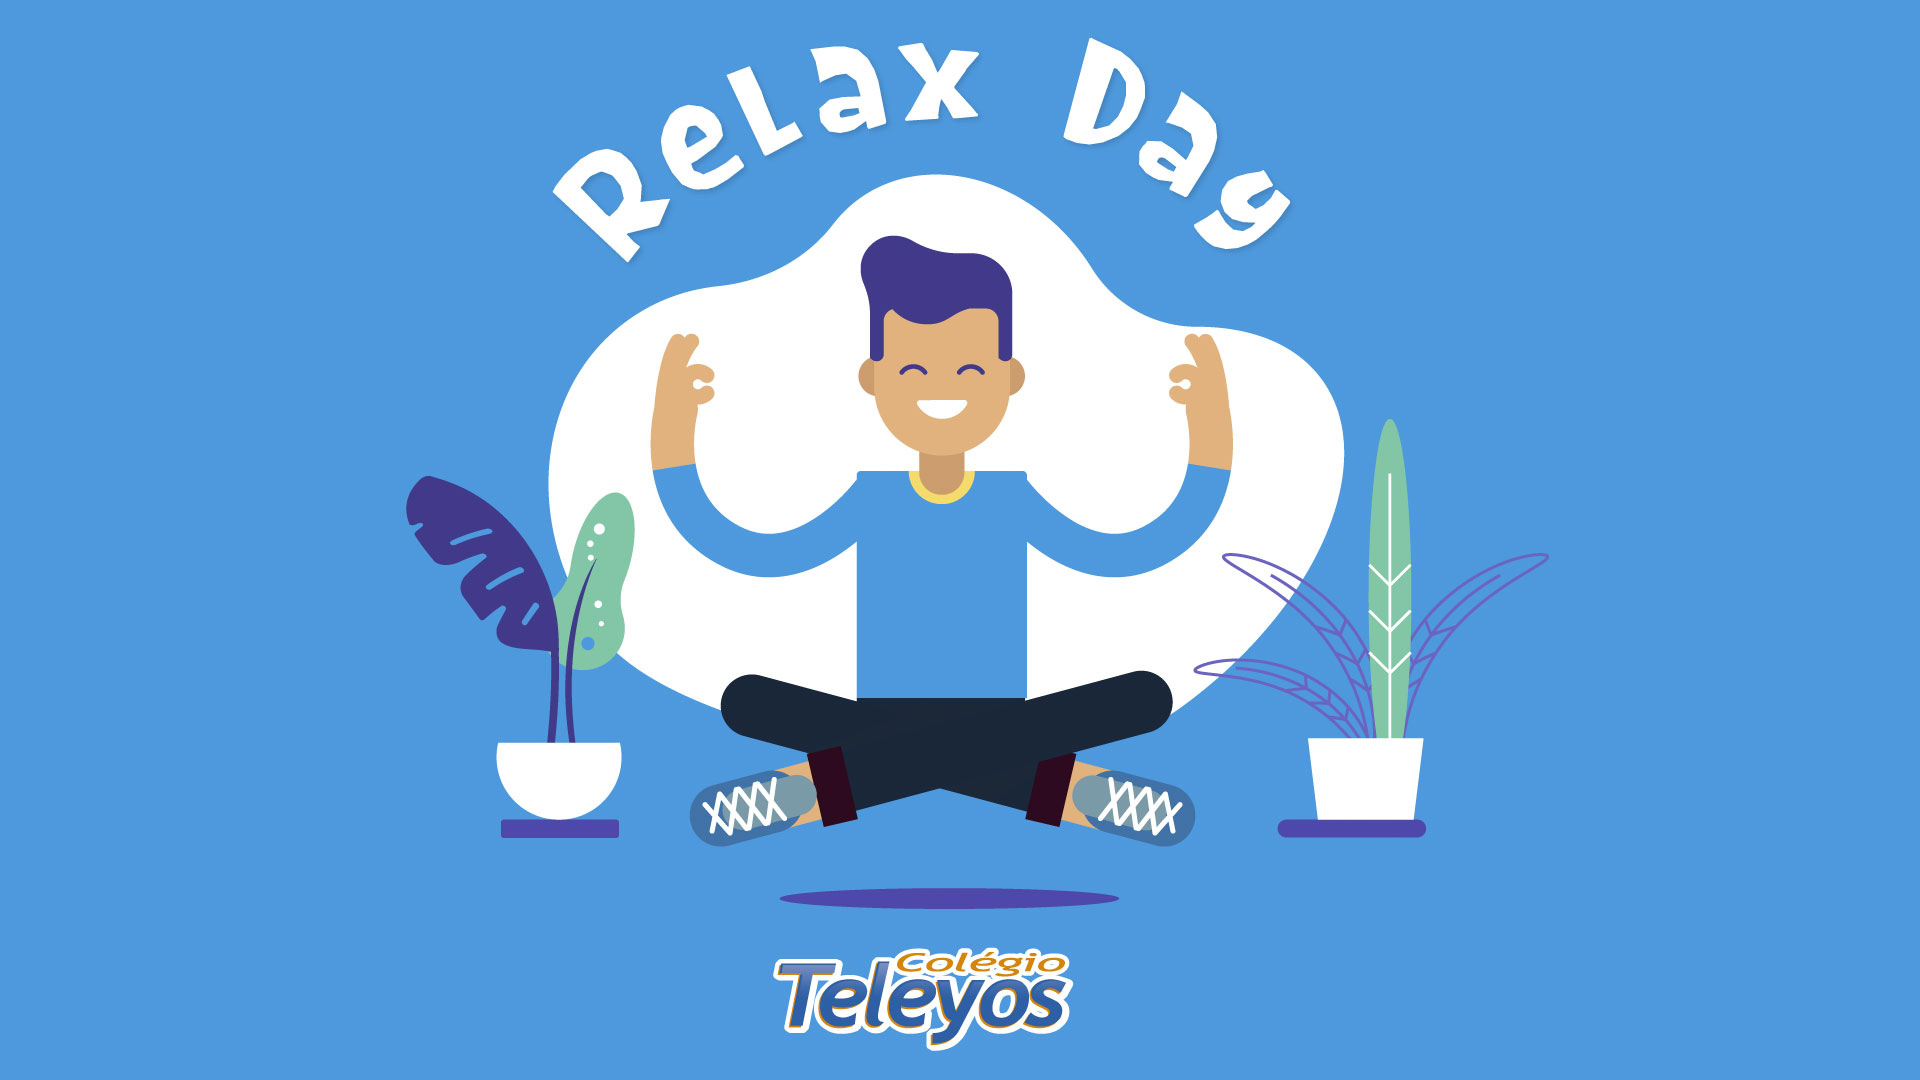 eventos/relax.day.php